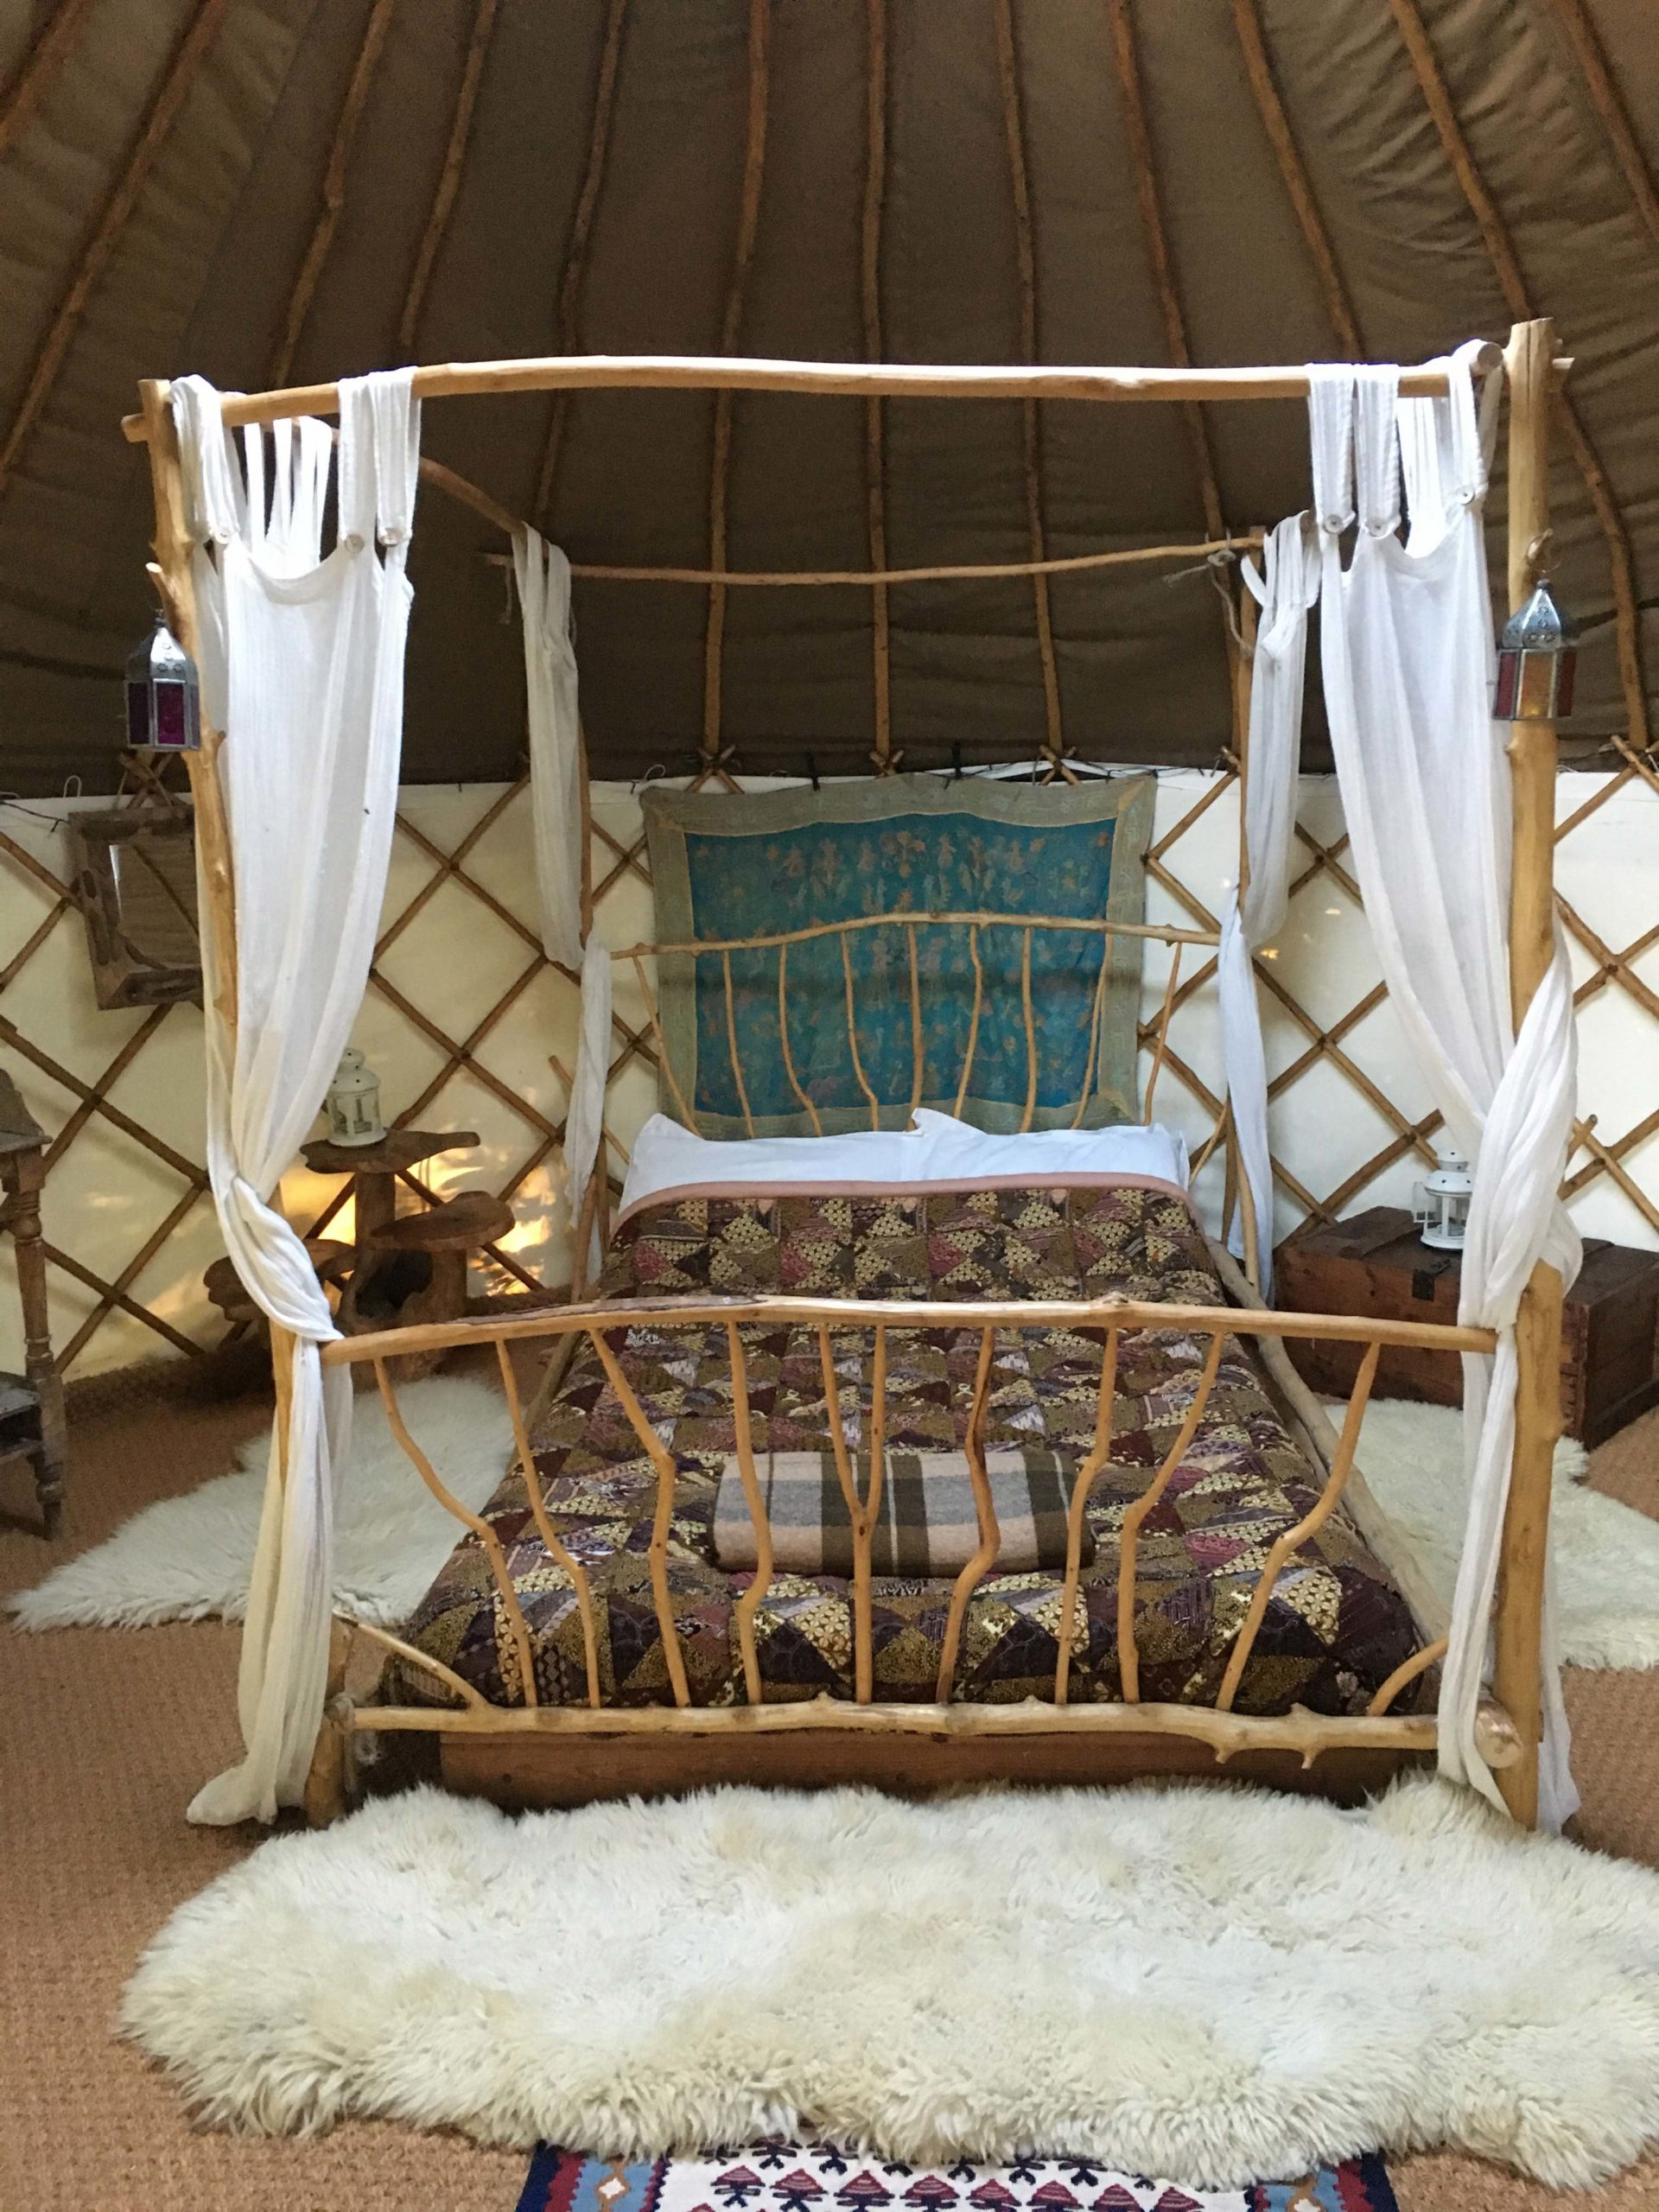 Barn Owl Yurt at Alde Garden Campsite